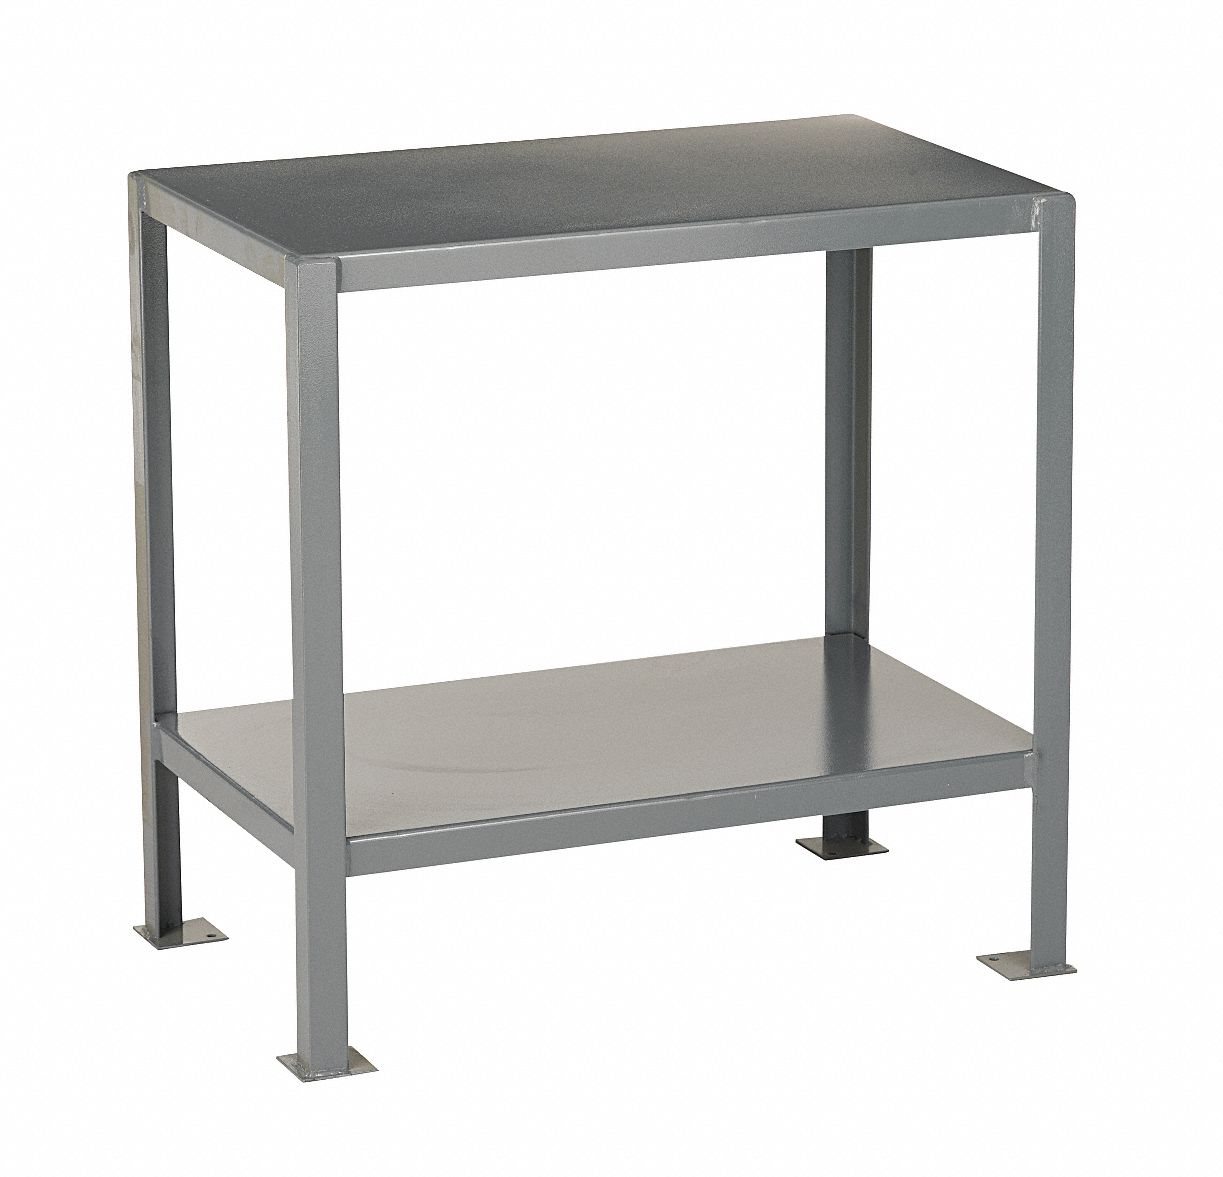 Fixed Height Work Table, Steel, 18 in Depth, 30 in Height, 24 in Width,2,000 lb Load Capacity